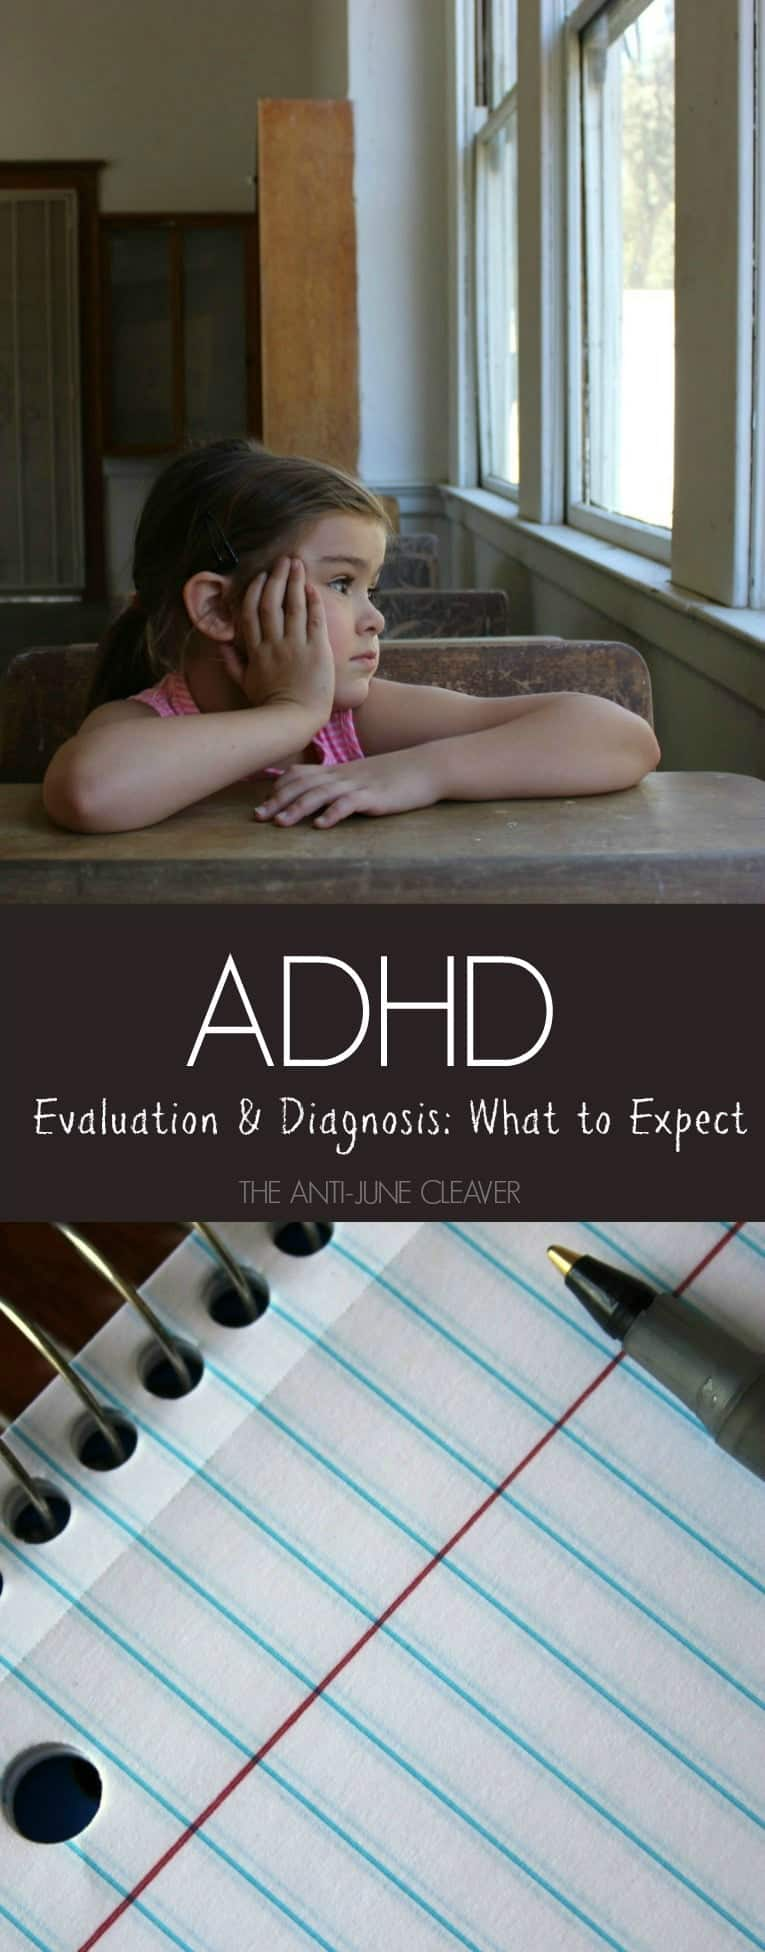 adhd-evaluation-diagnosis-what-to-expect-longpin2